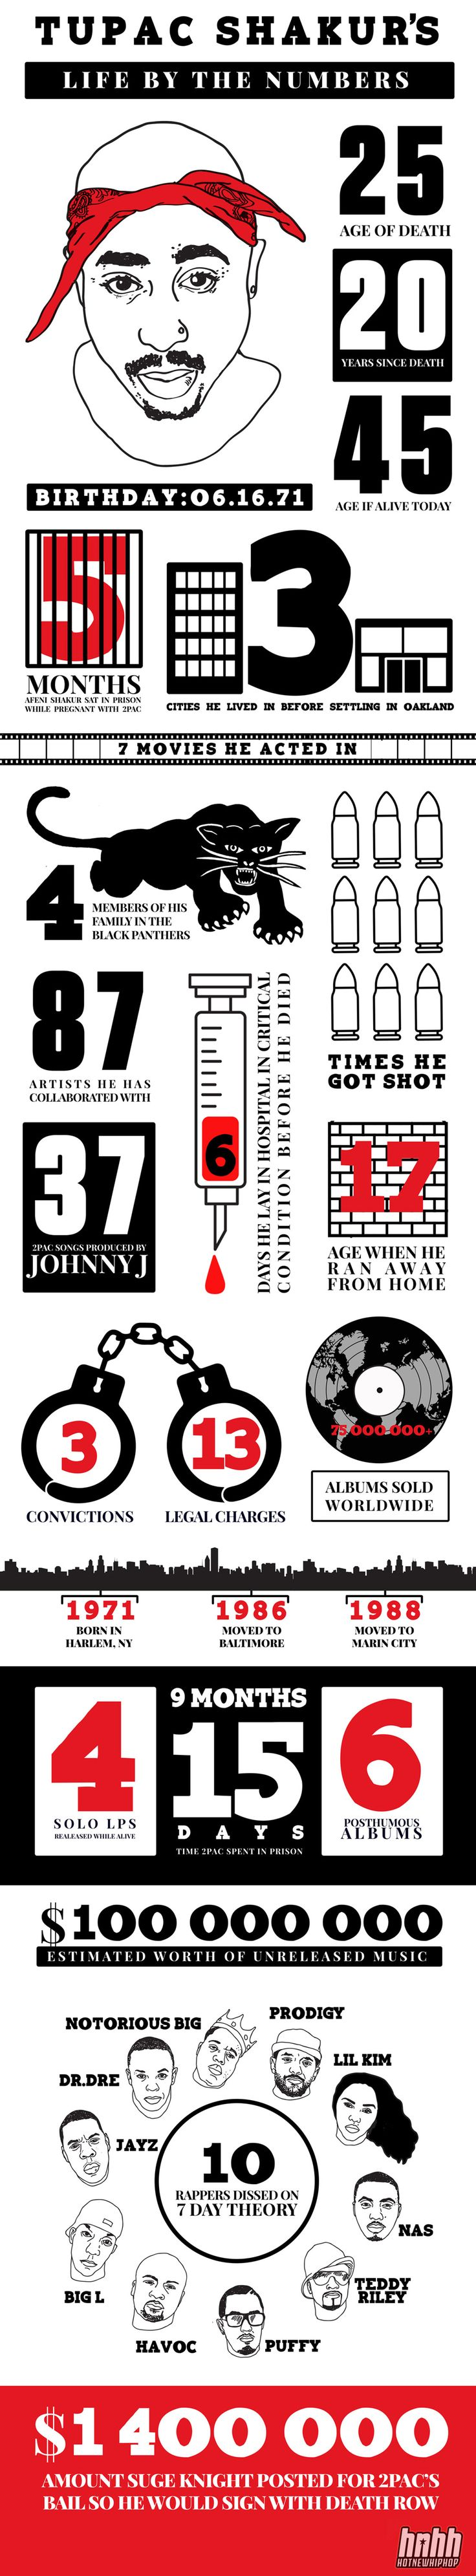 Tupac Shakur Life by the Numbers - Rap Infographic. Topic: rapper, 2pac, hiphop, song, songwriter, music